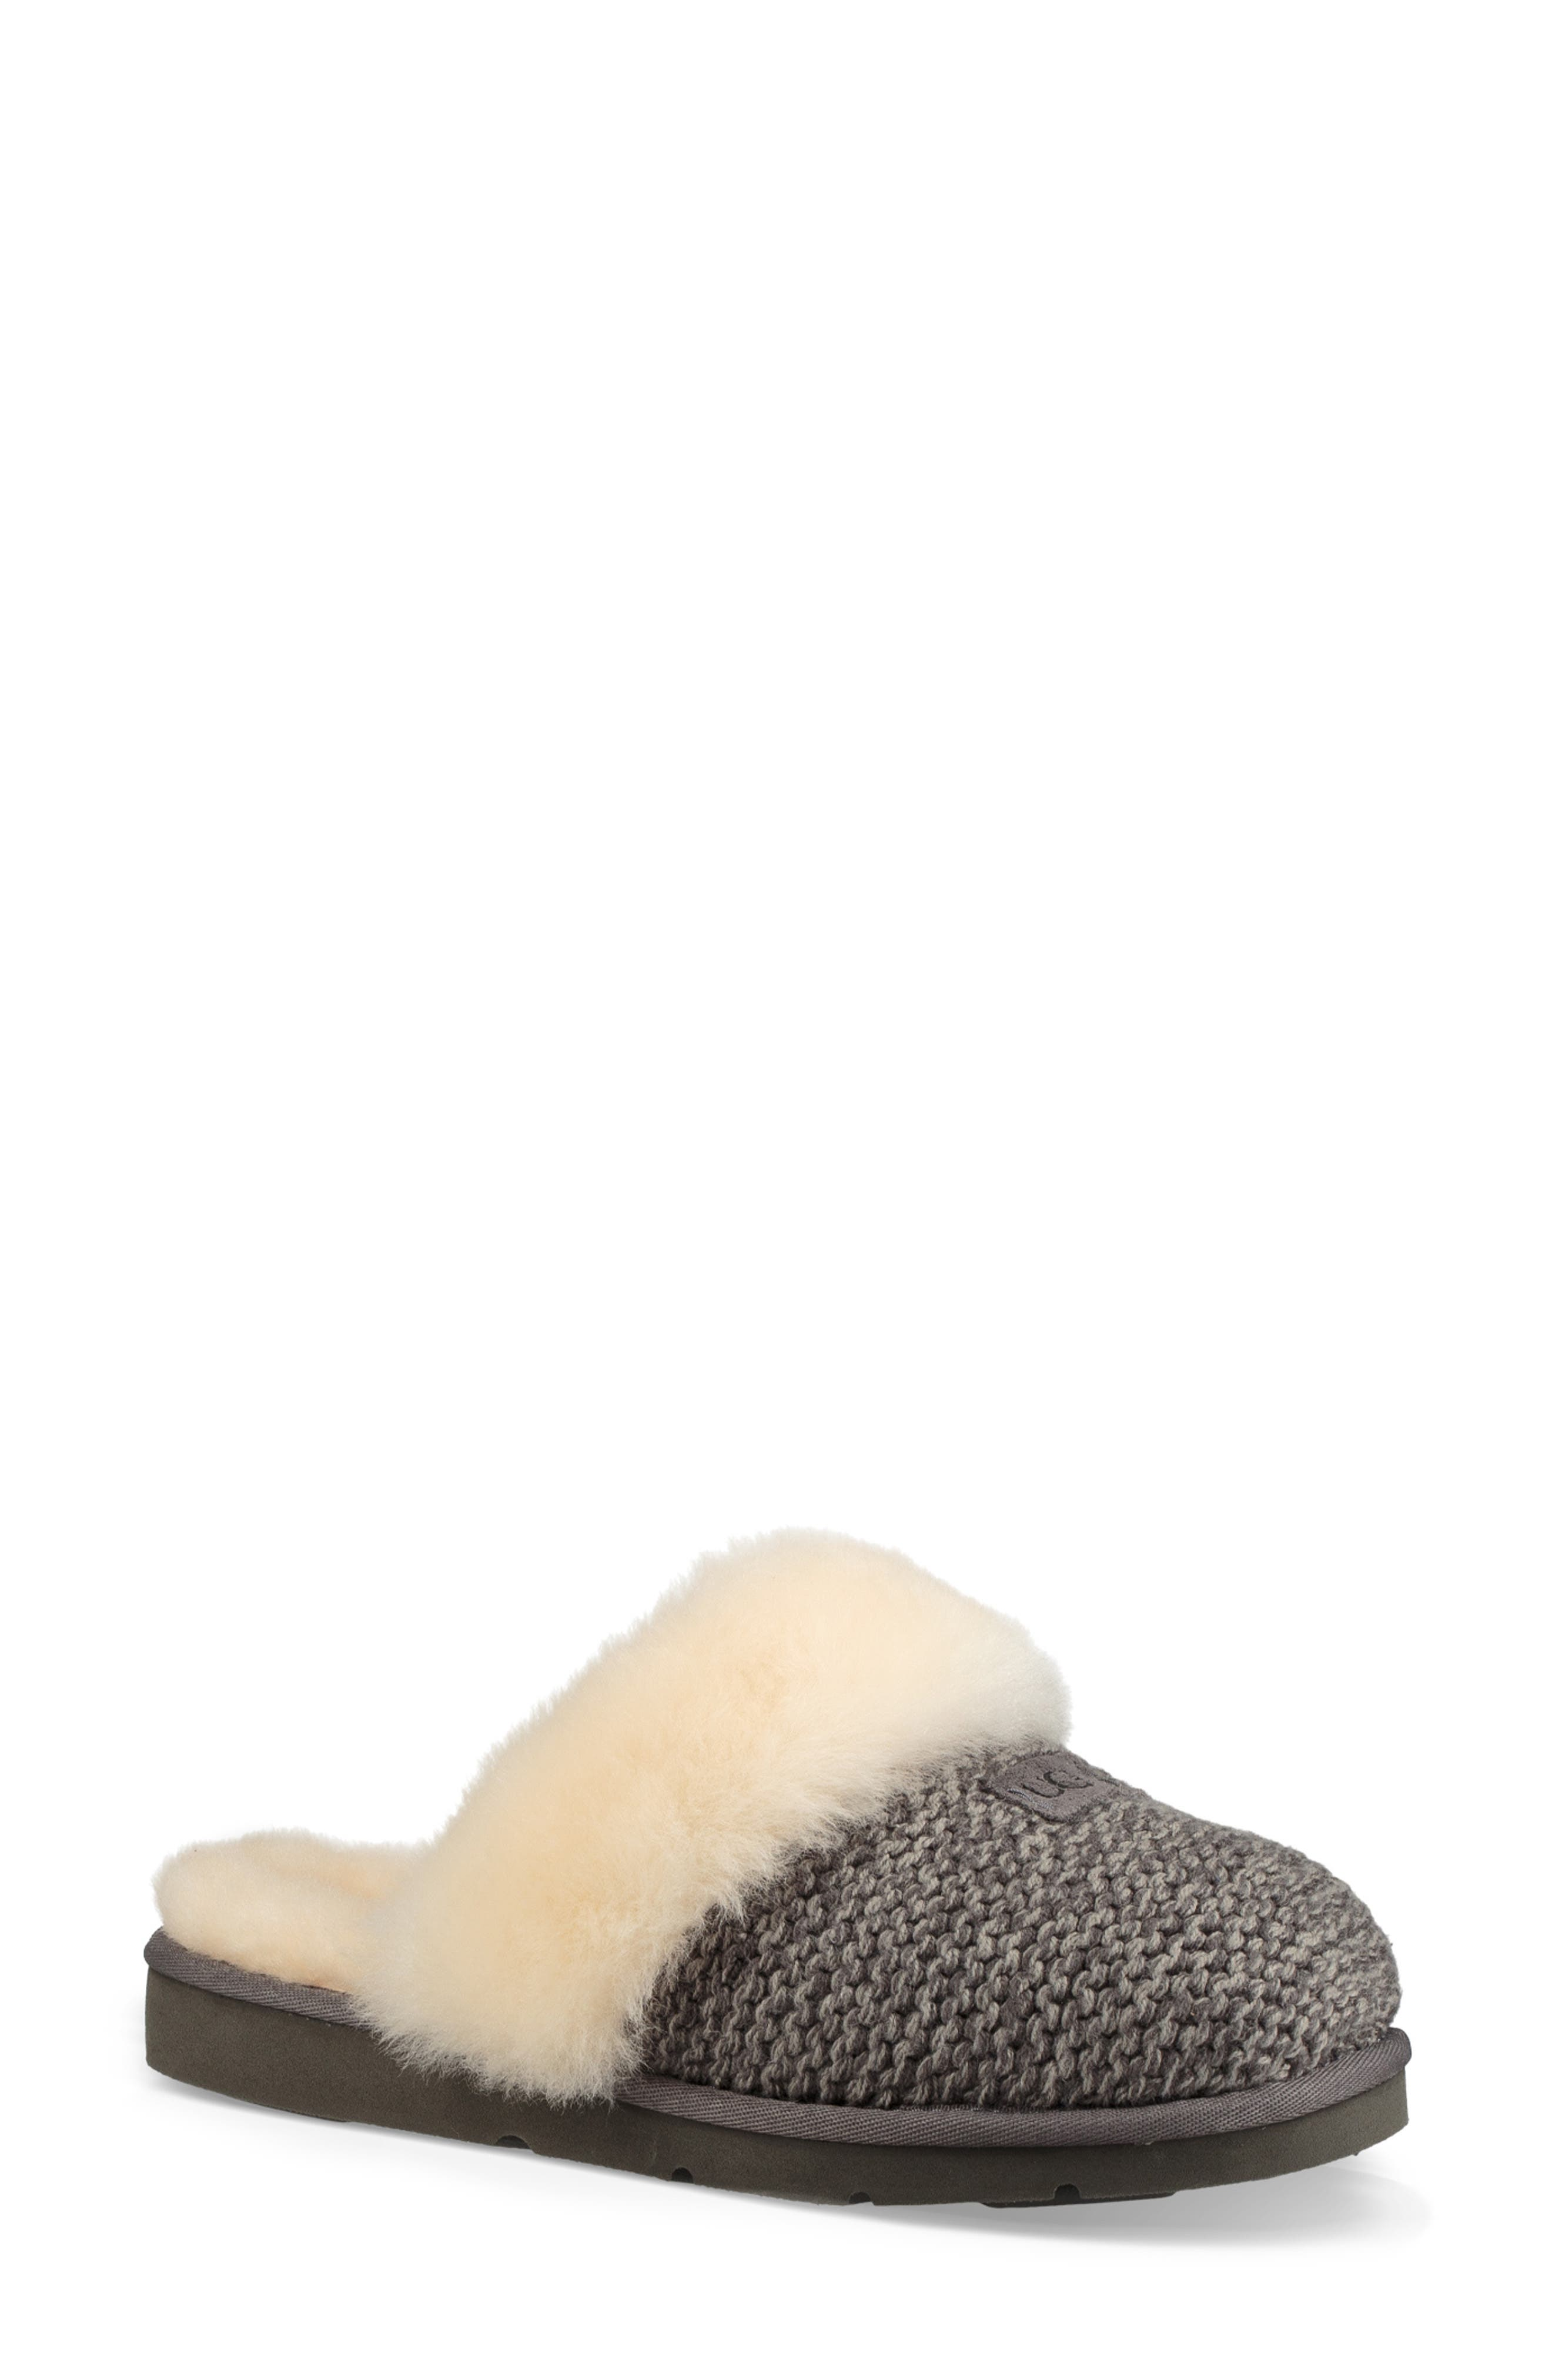 Cozy Knit Genuine Shearling Slipper,                         Main,                         color, CHARCOAL